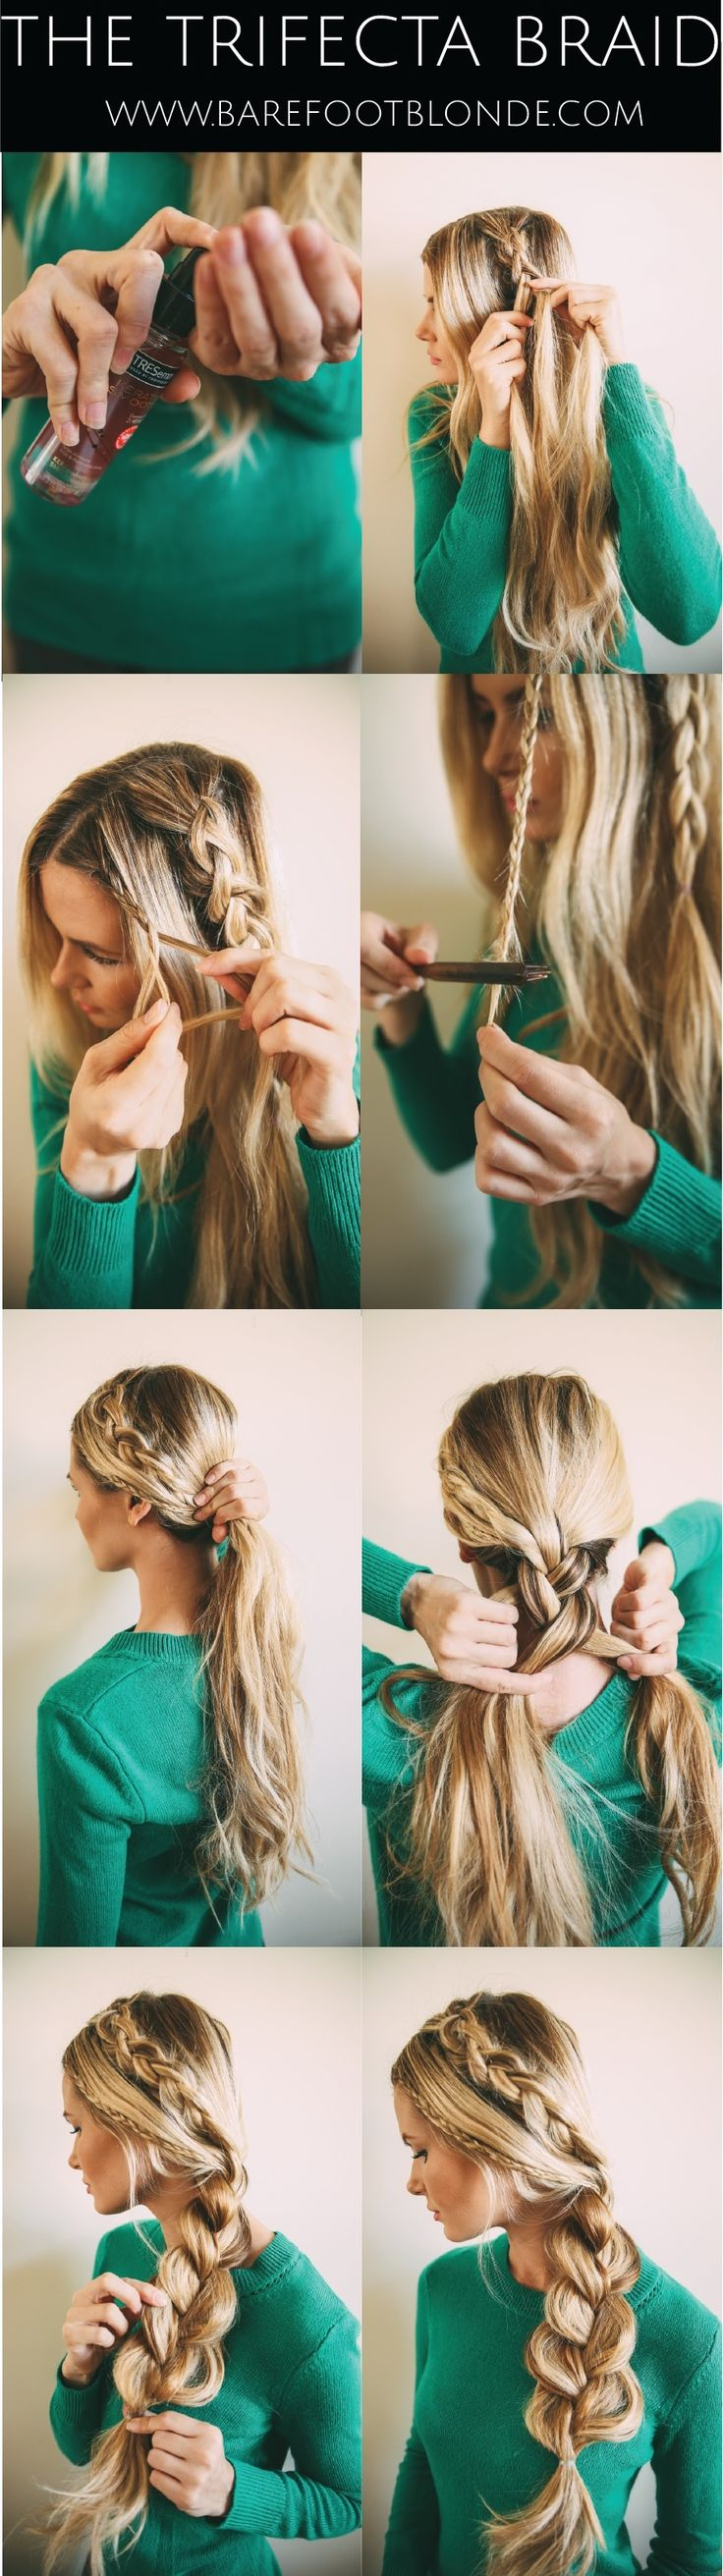 best hair ideas makeup and nails images on pinterest